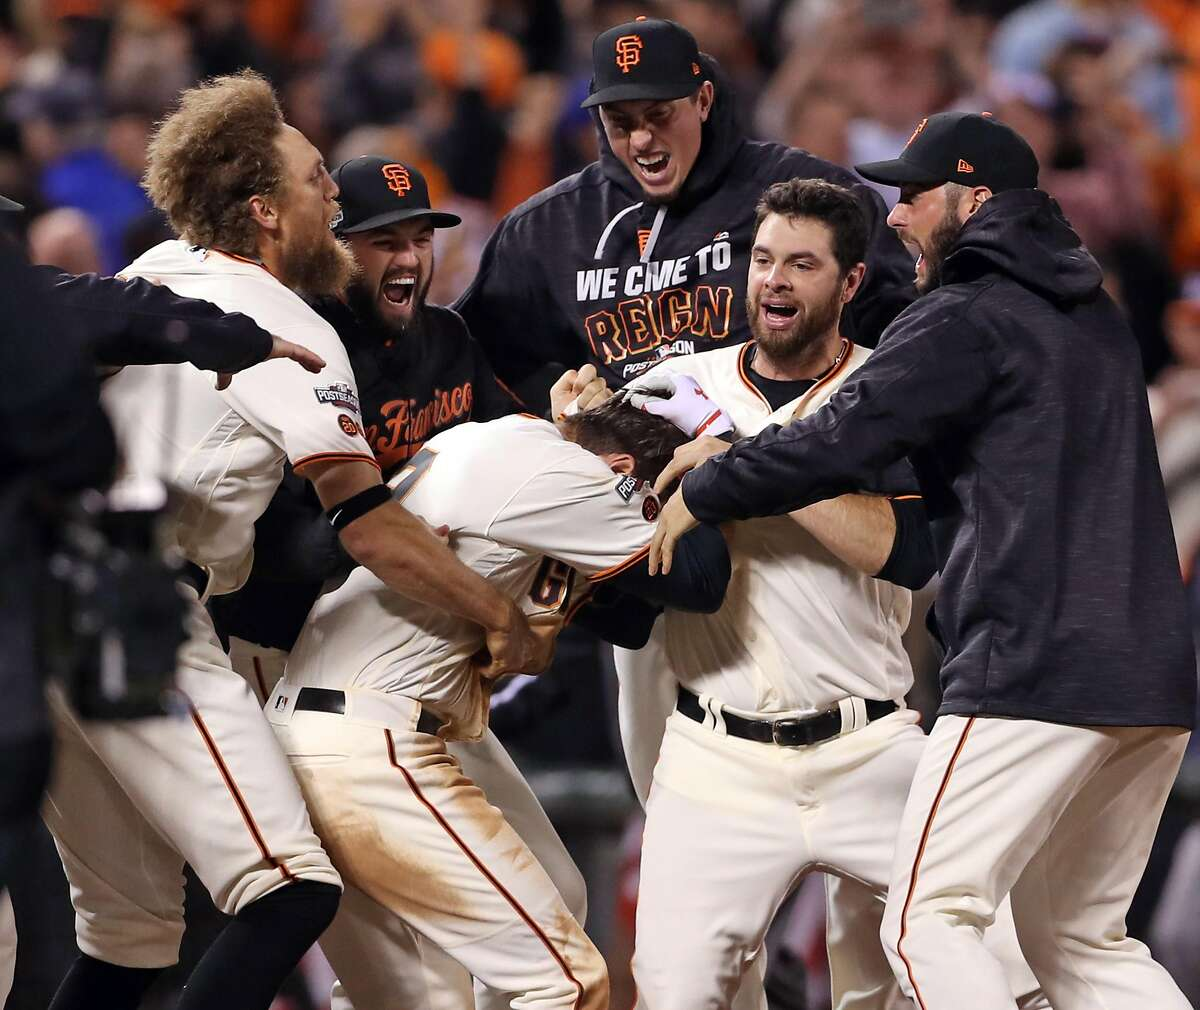 San Francisco Giants celebrate Joe Panik's game-winning double in 13th inning of 6-5 win over Chicago Cubs during Game 3 of the National League Division Series at AT&T Park in San Francisco, Calif., on Monday, October 10, 2016.